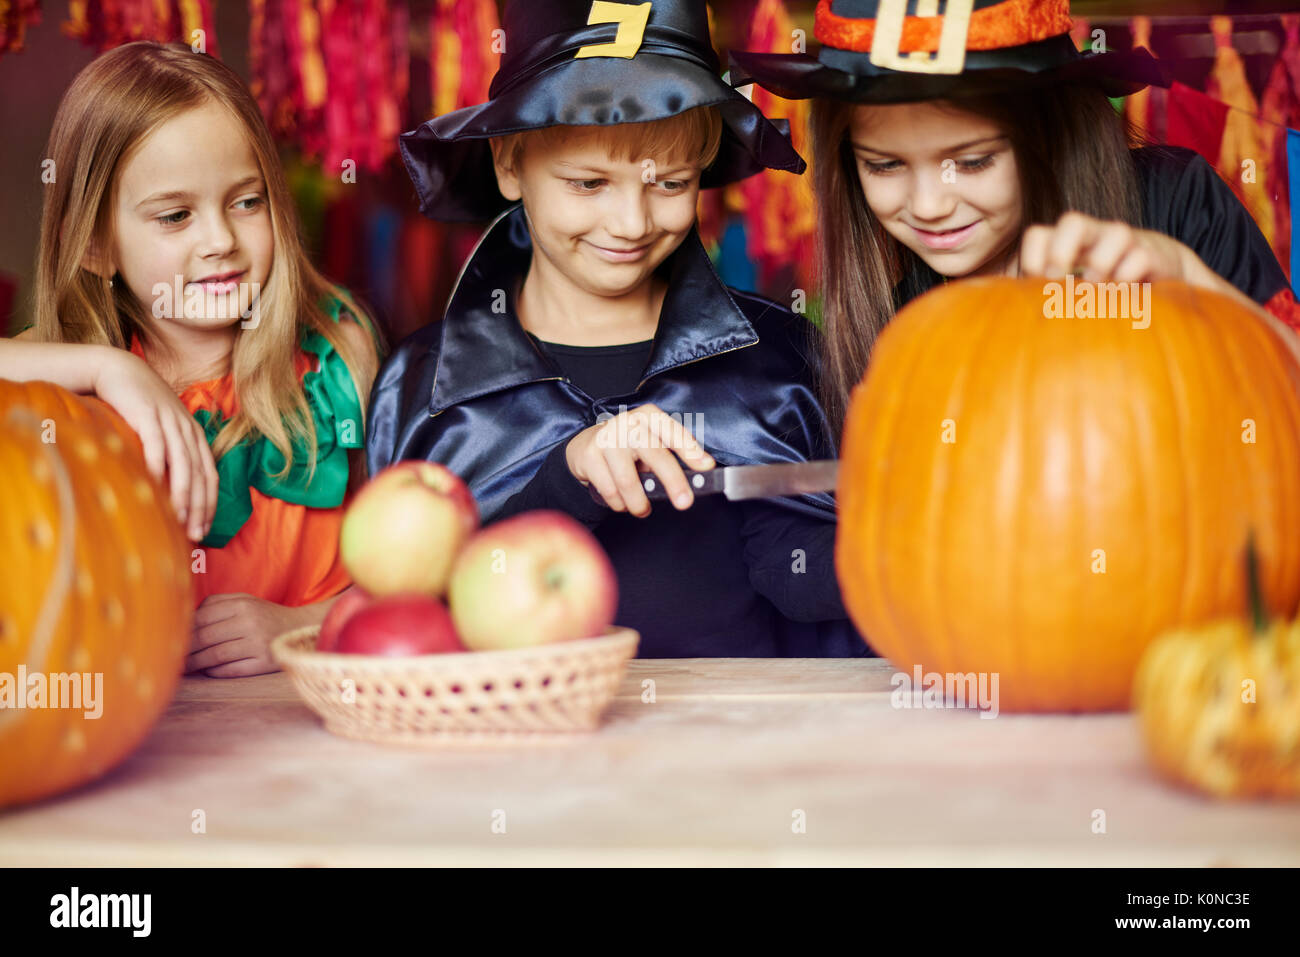 Carving a pumpkin is a duty of the boy - Stock Image